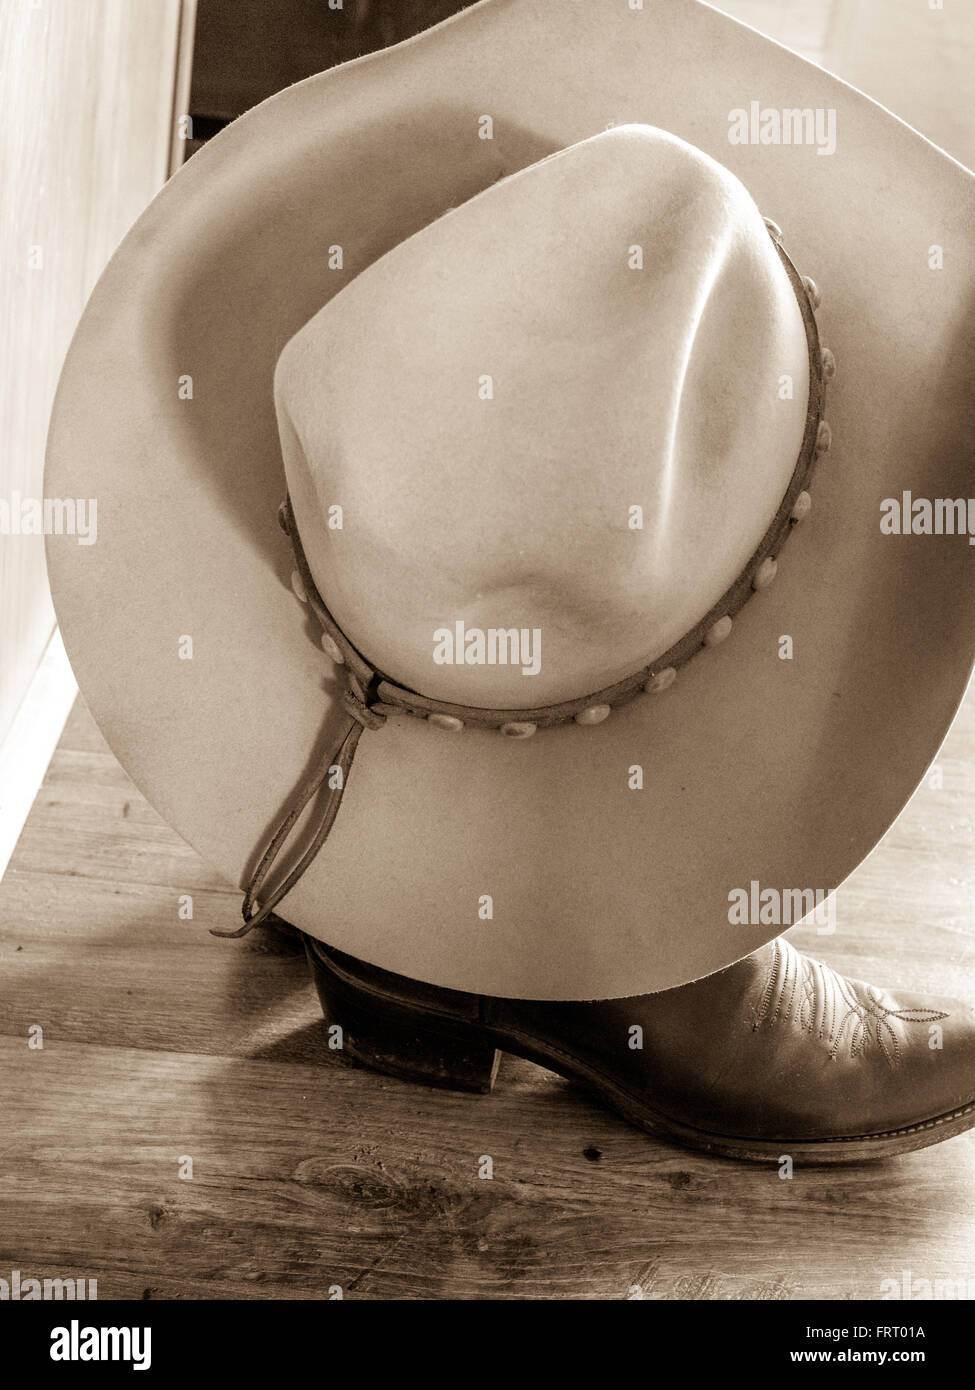 88b168ea Ten Gallon Hat Stock Photos & Ten Gallon Hat Stock Images - Alamy